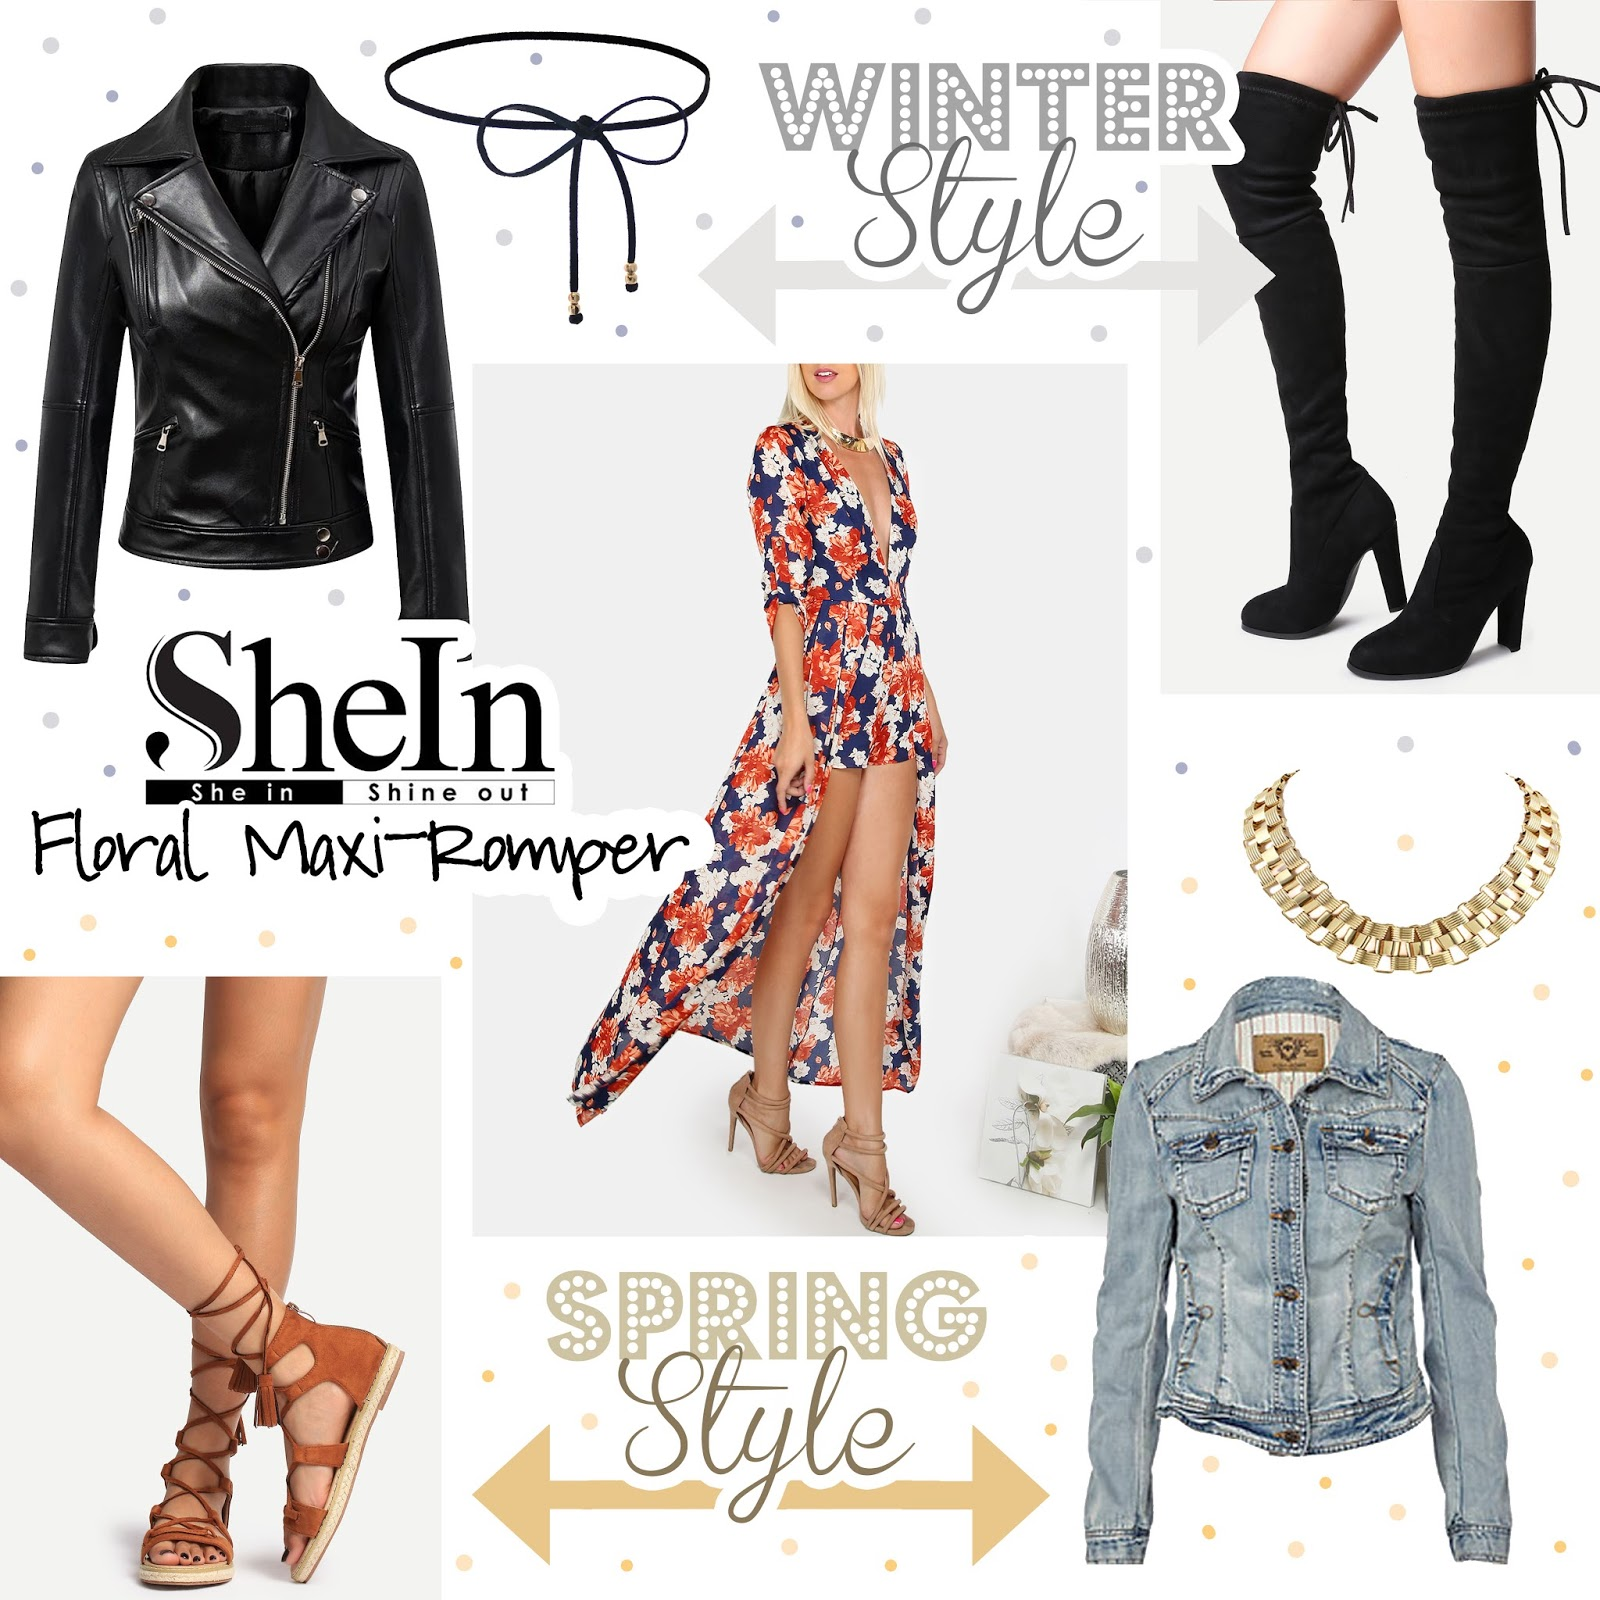 Shein Clothing Deals